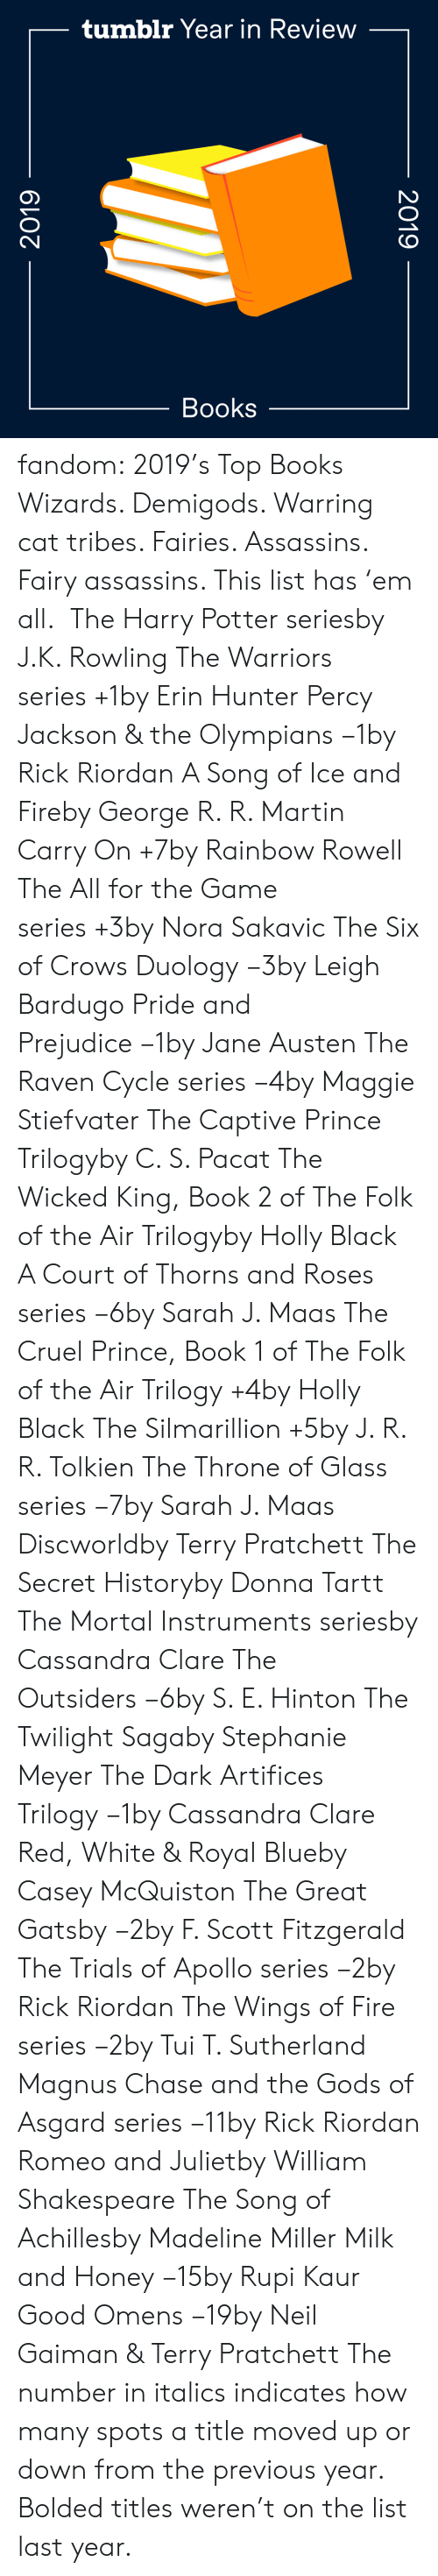 scott: tumblr Year in Review  Books  2019  2019 fandom:  2019's Top Books  Wizards. Demigods. Warring cat tribes. Fairies. Assassins. Fairy assassins. This list has 'em all.   The Harry Potter seriesby J.K. Rowling  The Warriors series +1by Erin Hunter  Percy Jackson & the Olympians −1by Rick Riordan  A Song of Ice and Fireby George R. R. Martin  Carry On +7by Rainbow Rowell  The All for the Game series +3by Nora Sakavic  The Six of Crows Duology −3by Leigh Bardugo  Pride and Prejudice −1by Jane Austen  The Raven Cycle series −4by Maggie Stiefvater  The Captive Prince Trilogyby C. S. Pacat  The Wicked King, Book 2 of The Folk of the Air Trilogyby Holly Black  A Court of Thorns and Roses series −6by Sarah J. Maas  The Cruel Prince, Book 1 of The Folk of the Air Trilogy +4by Holly Black  The Silmarillion +5by J. R. R. Tolkien  The Throne of Glass series −7by Sarah J. Maas  Discworldby Terry Pratchett  The Secret Historyby Donna Tartt  The Mortal Instruments seriesby Cassandra Clare  The Outsiders −6by S. E. Hinton  The Twilight Sagaby Stephanie Meyer  The Dark Artifices Trilogy −1by Cassandra Clare  Red, White & Royal Blueby Casey McQuiston  The Great Gatsby −2by F. Scott Fitzgerald  The Trials of Apollo series −2by Rick Riordan  The Wings of Fire series −2by Tui T. Sutherland  Magnus Chase and the Gods of Asgard series −11by Rick Riordan  Romeo and Julietby William Shakespeare  The Song of Achillesby Madeline Miller  Milk and Honey −15by Rupi Kaur  Good Omens −19by Neil Gaiman & Terry Pratchett The number in italics indicates how many spots a title moved up or down from the previous year. Bolded titles weren't on the list last year.